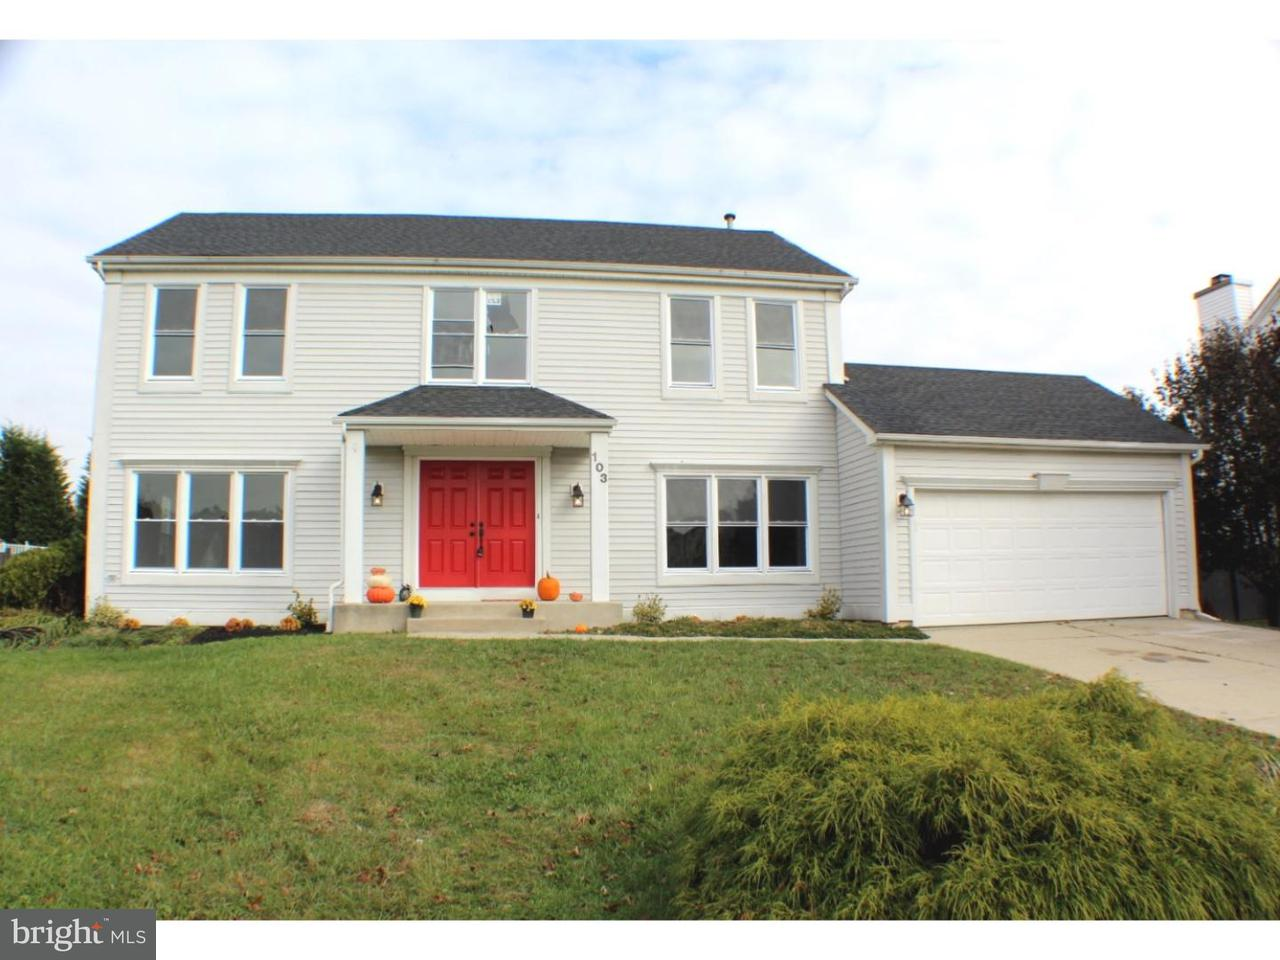 Single Family Home for Sale at 103 DESCHLER BLVD Clayton, New Jersey 08312 United States